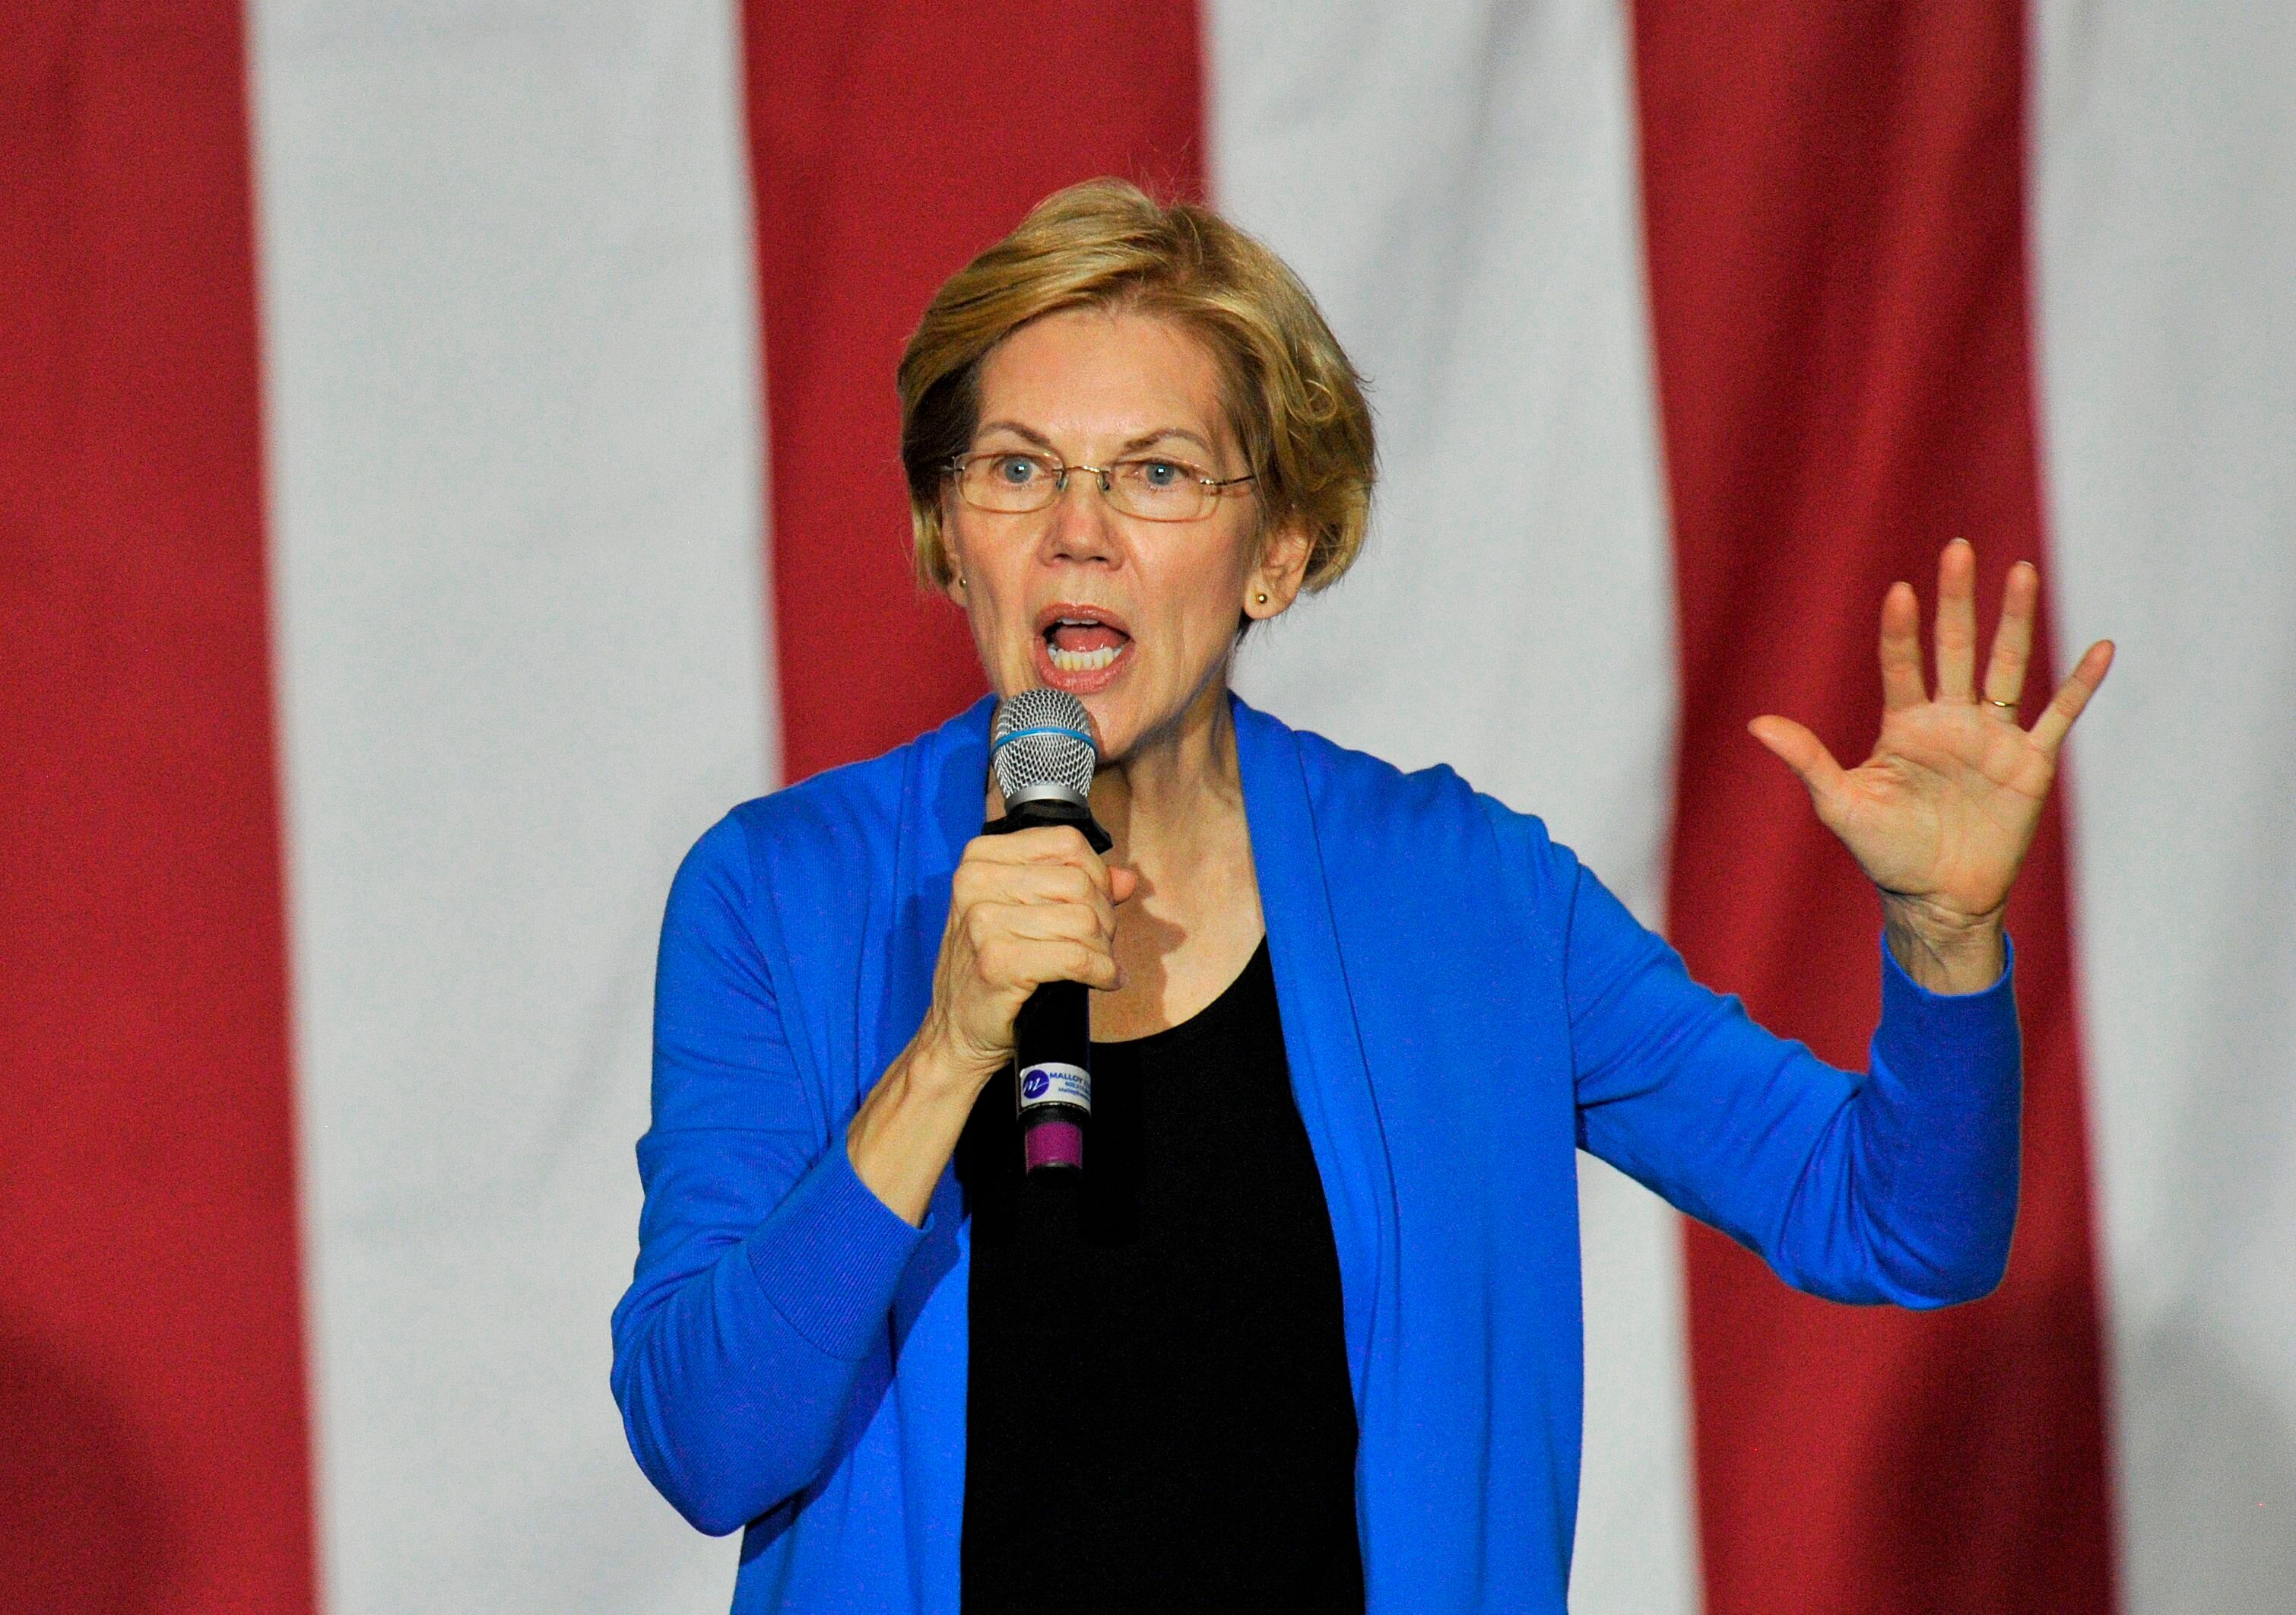 Elizabeth Warren Proposes Federal Ban On Industry-Funded 'Junk Science'